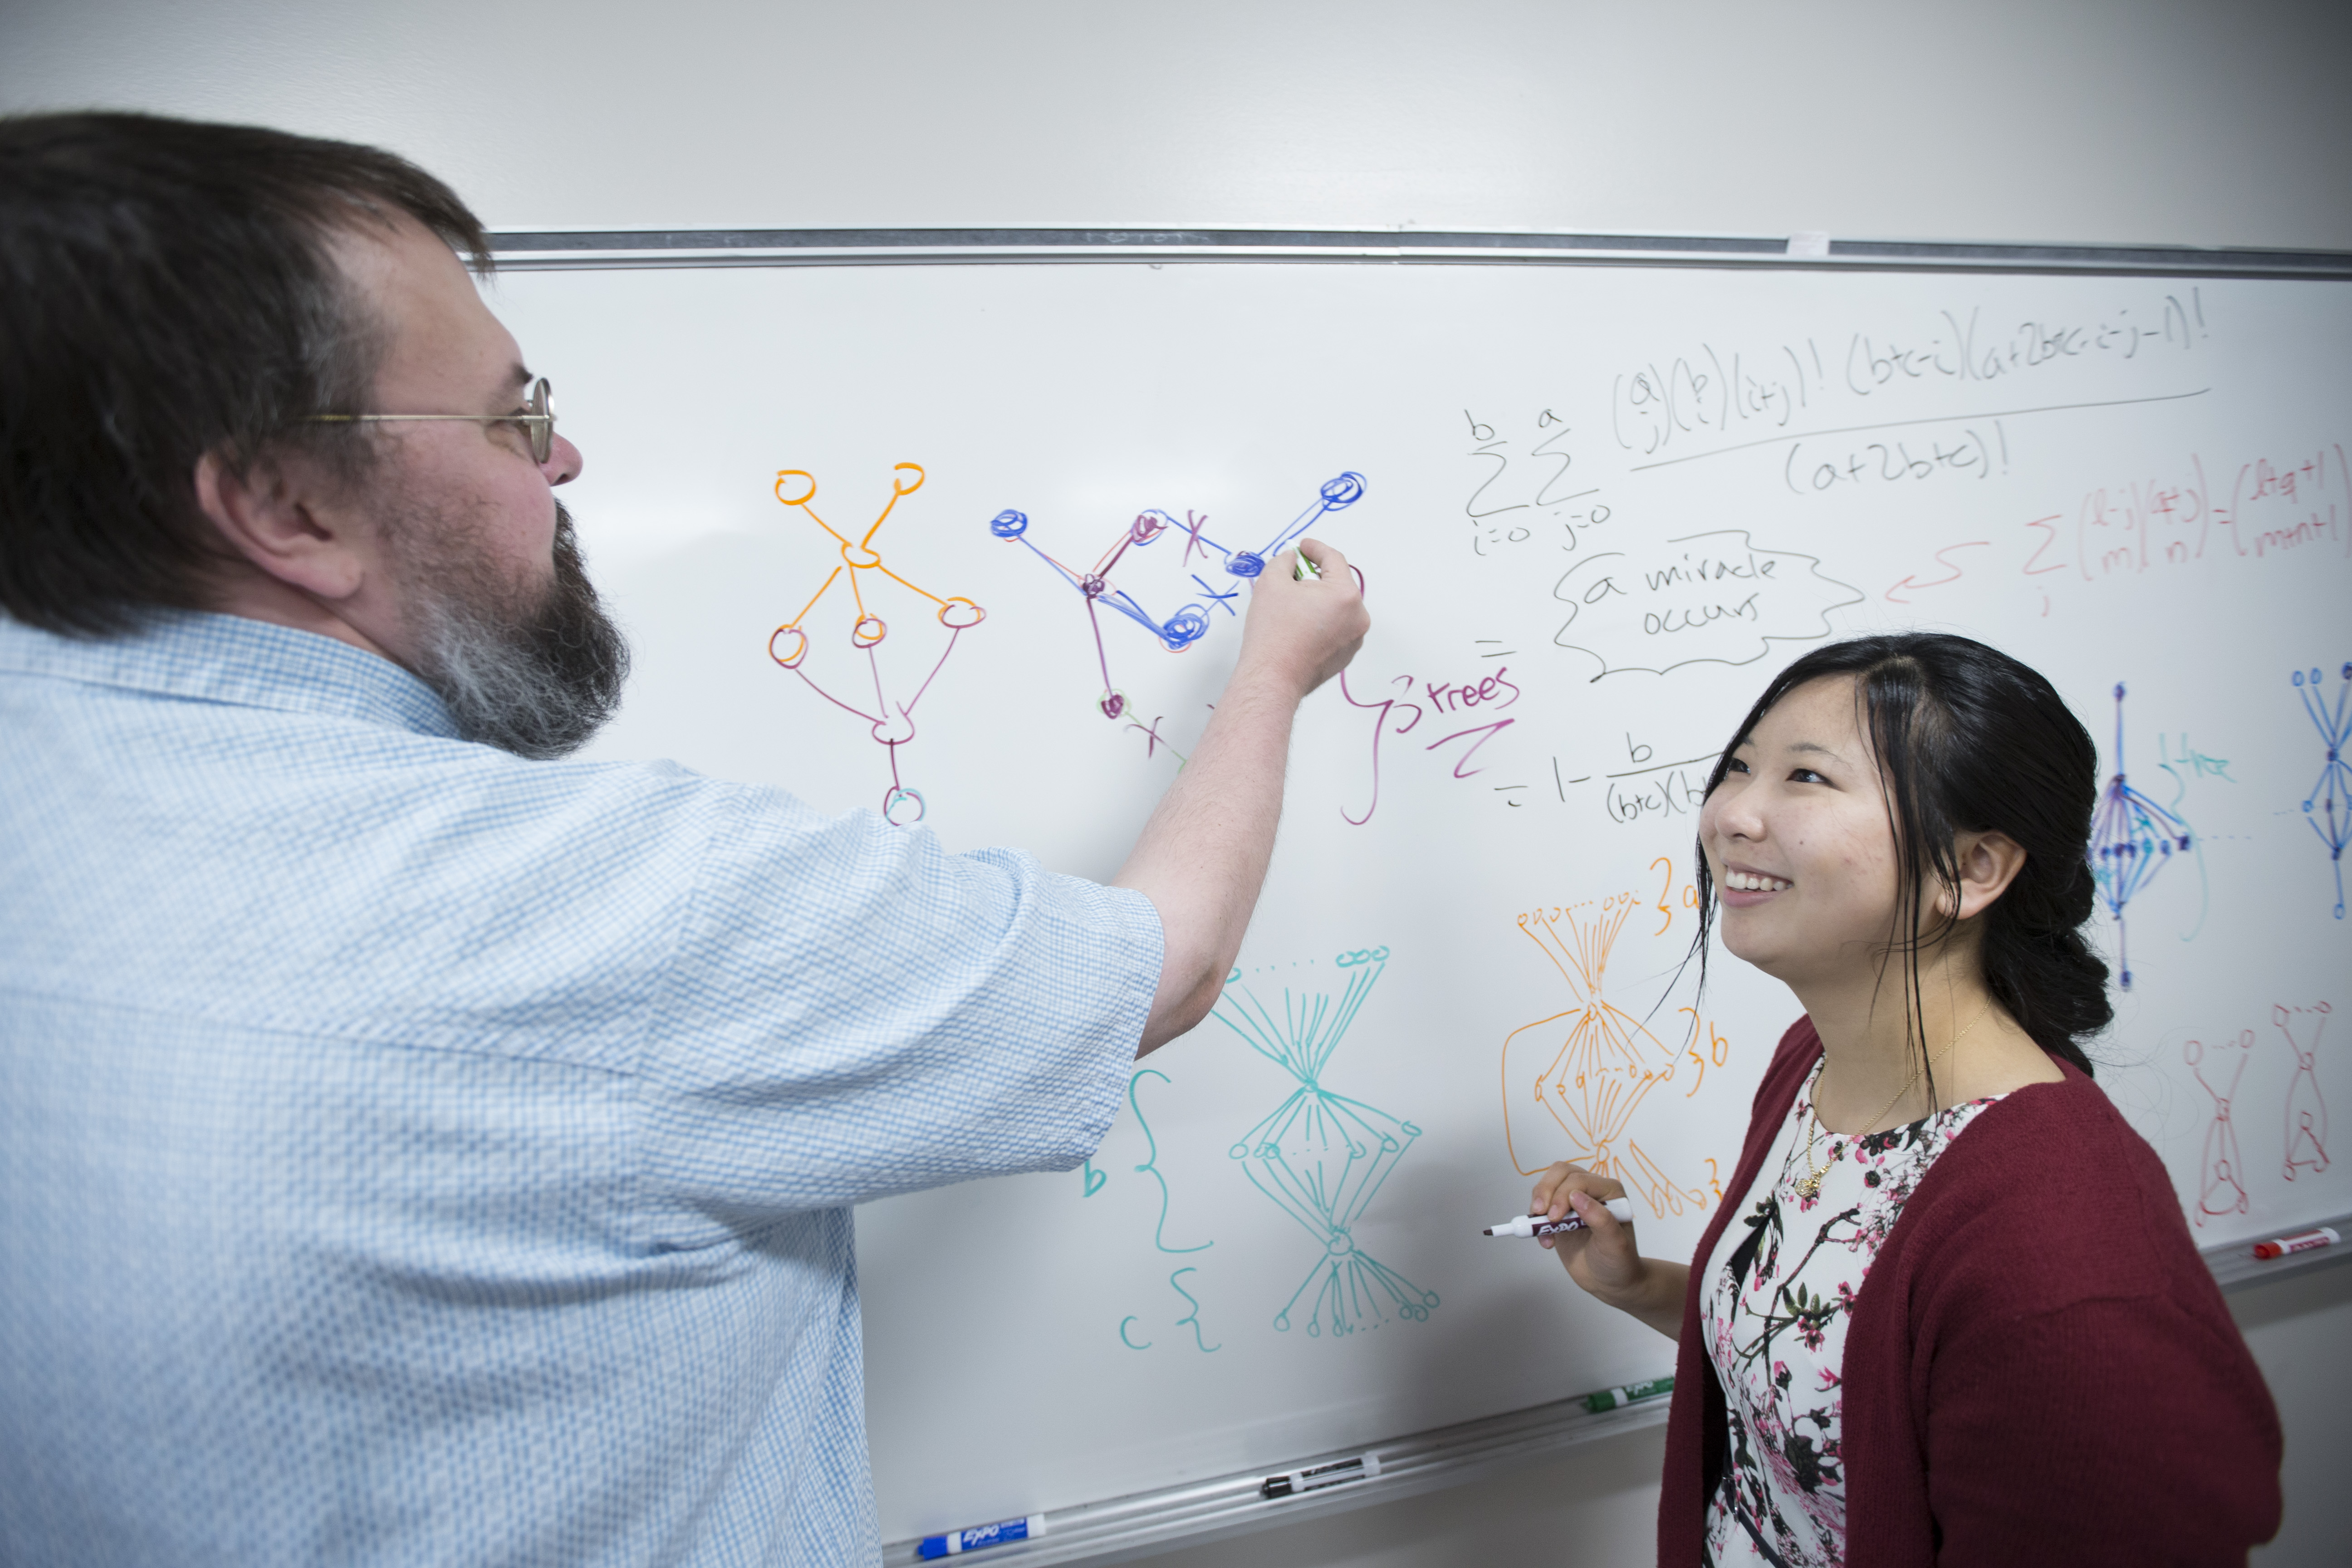 A math professor and female student at a whiteboard.